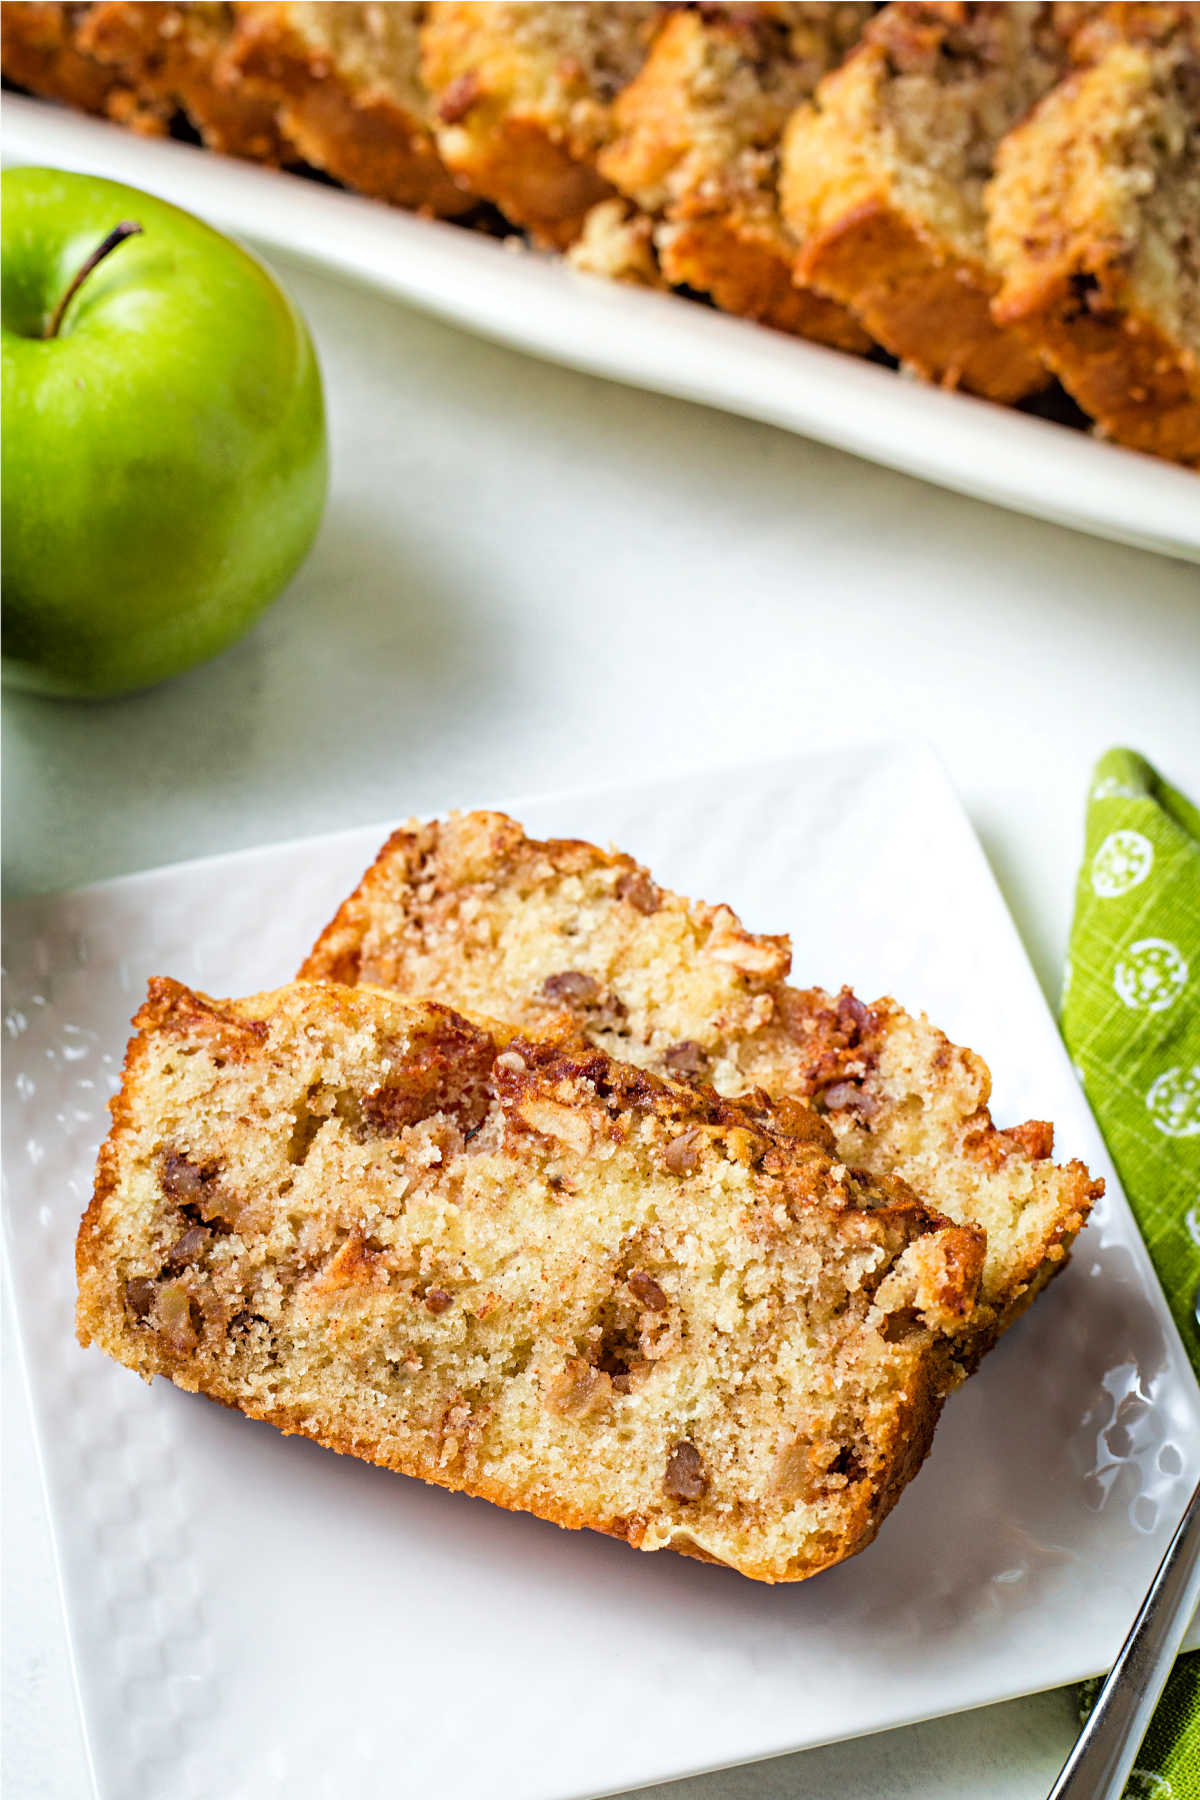 two slices of apple cinnamon bread on a square white plate with a Granny Smith apple in the background.